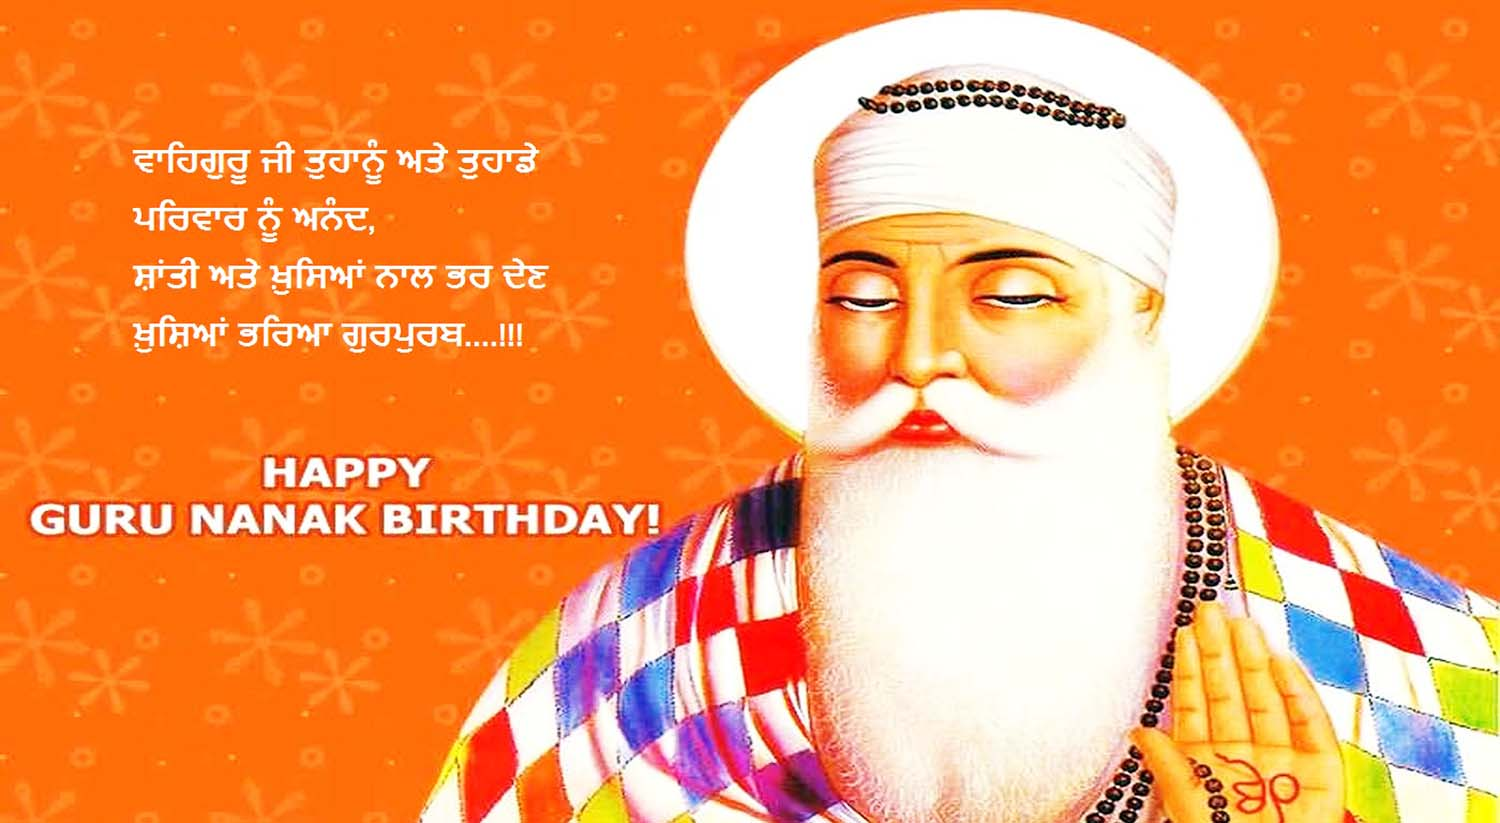 happy gurpurab message in punjabi